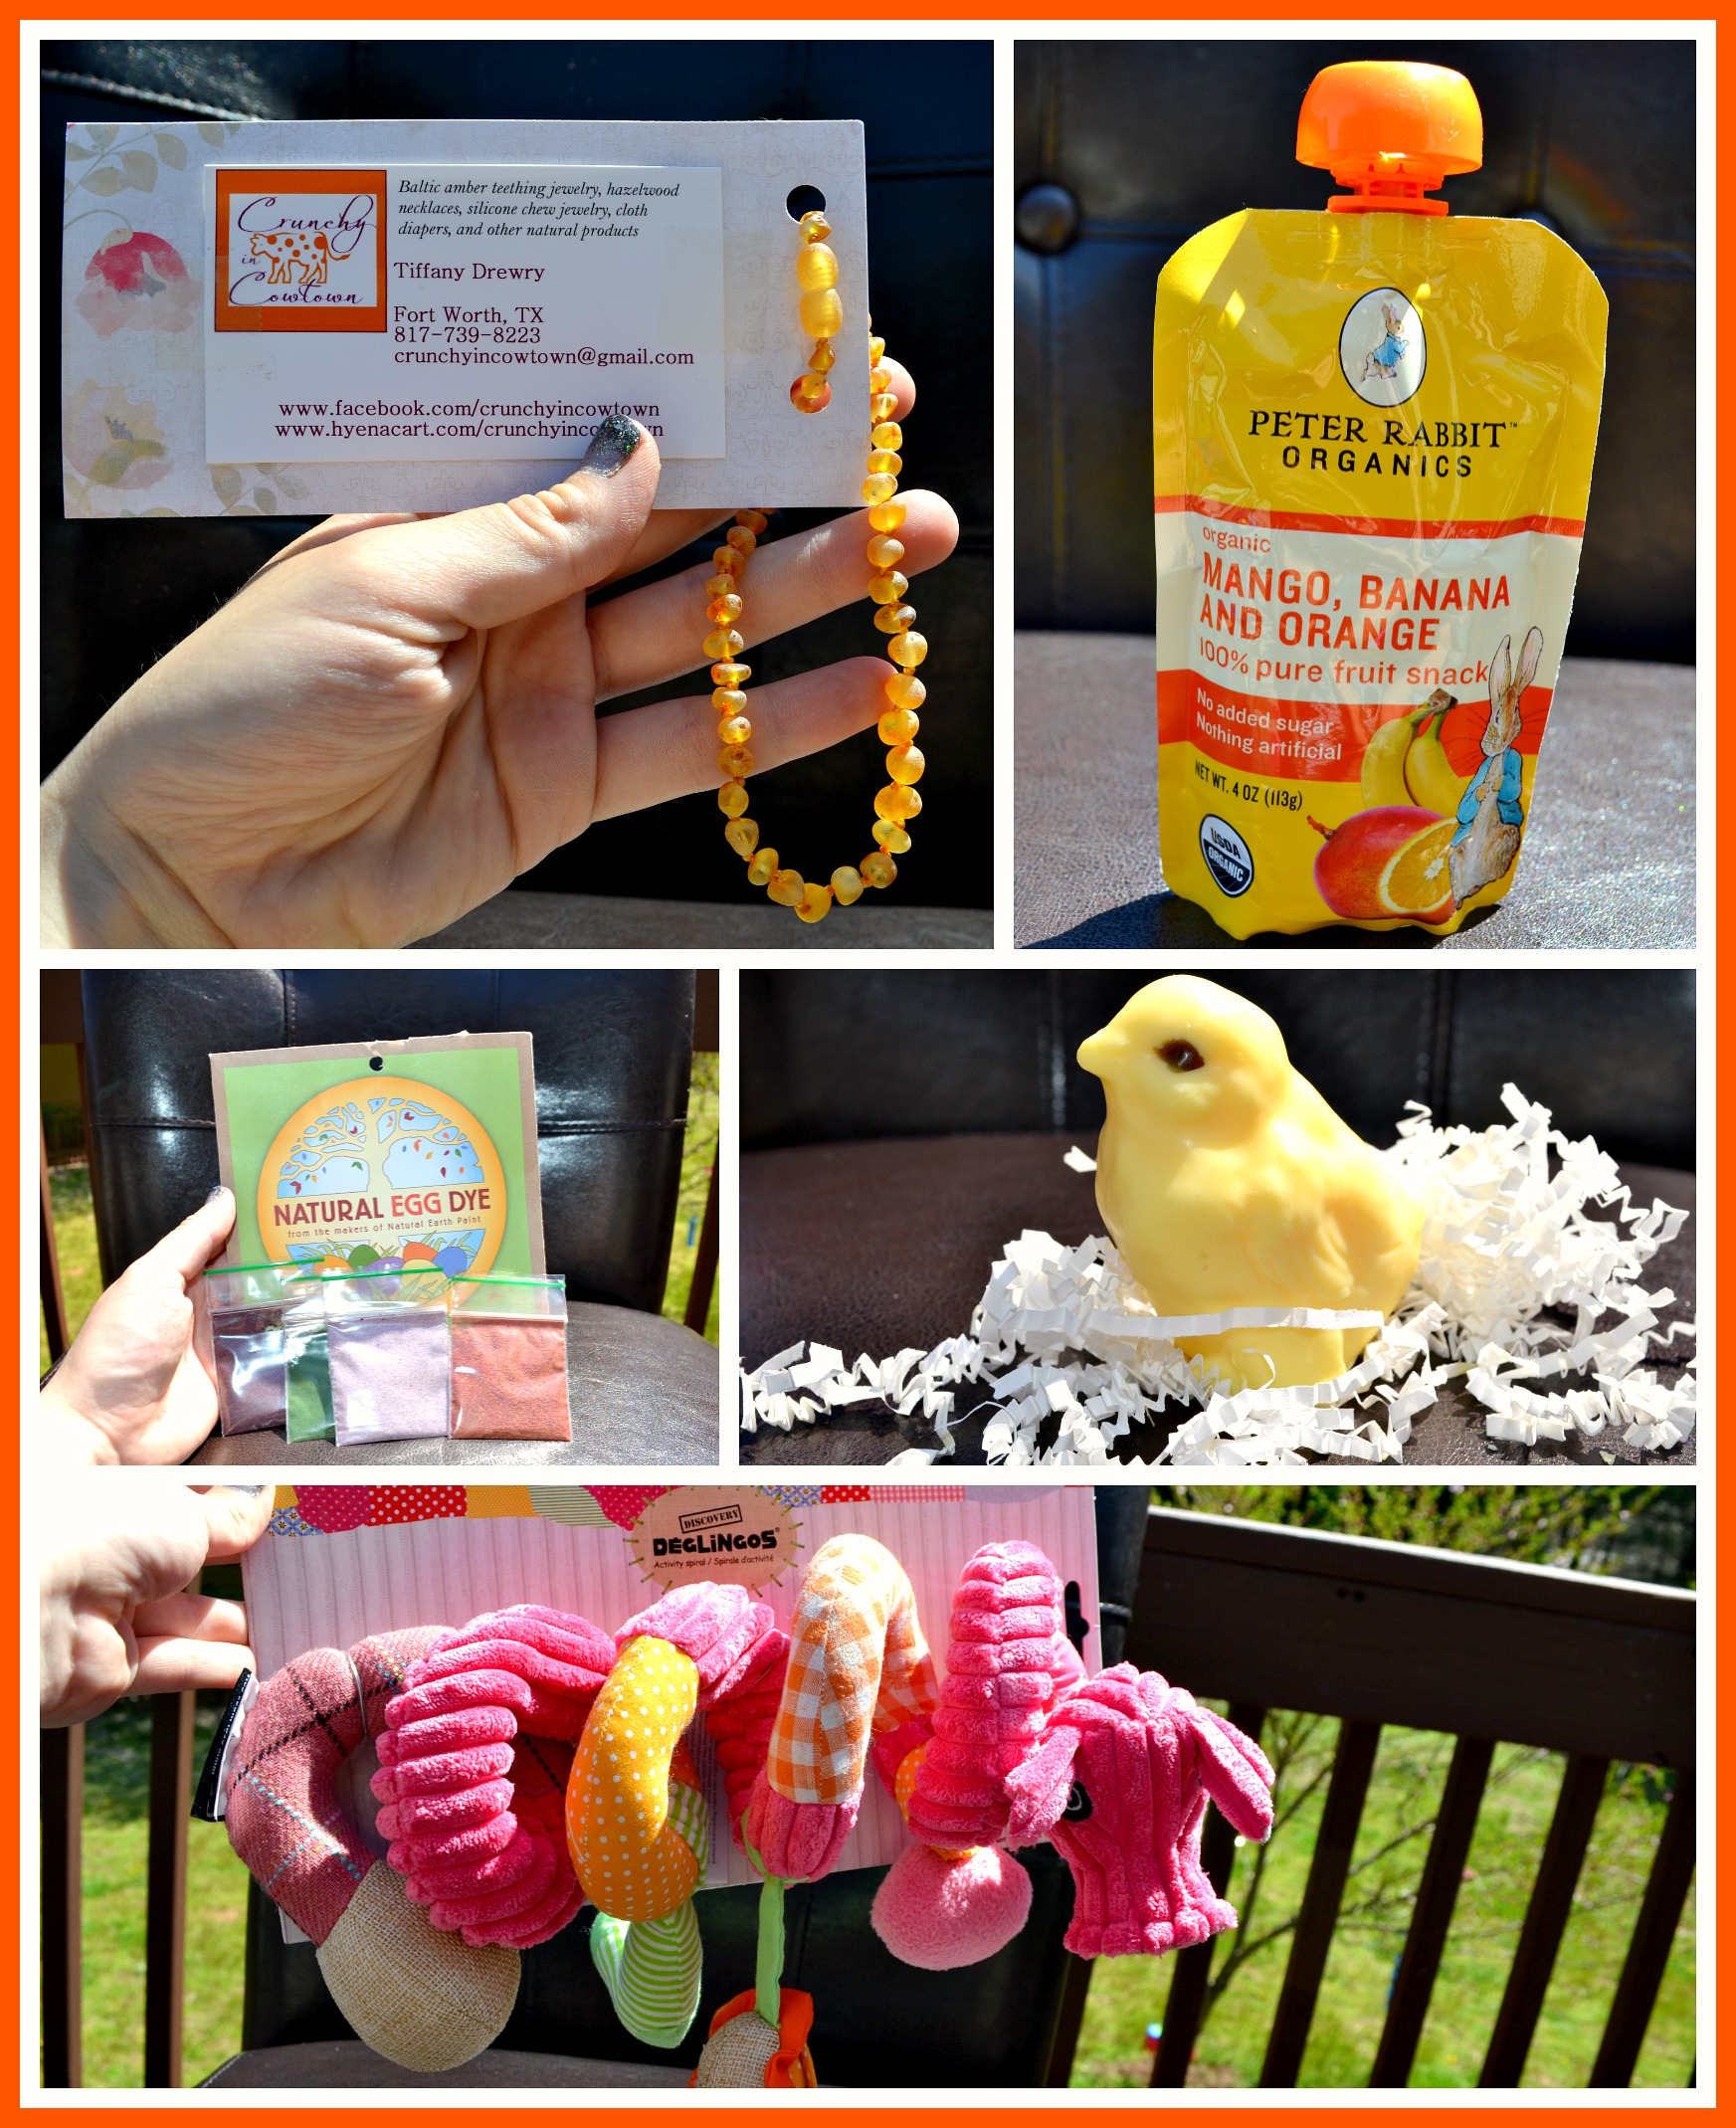 Silly Rhino Subscription Box Review (Getting Ready For Baby Gift Guide)